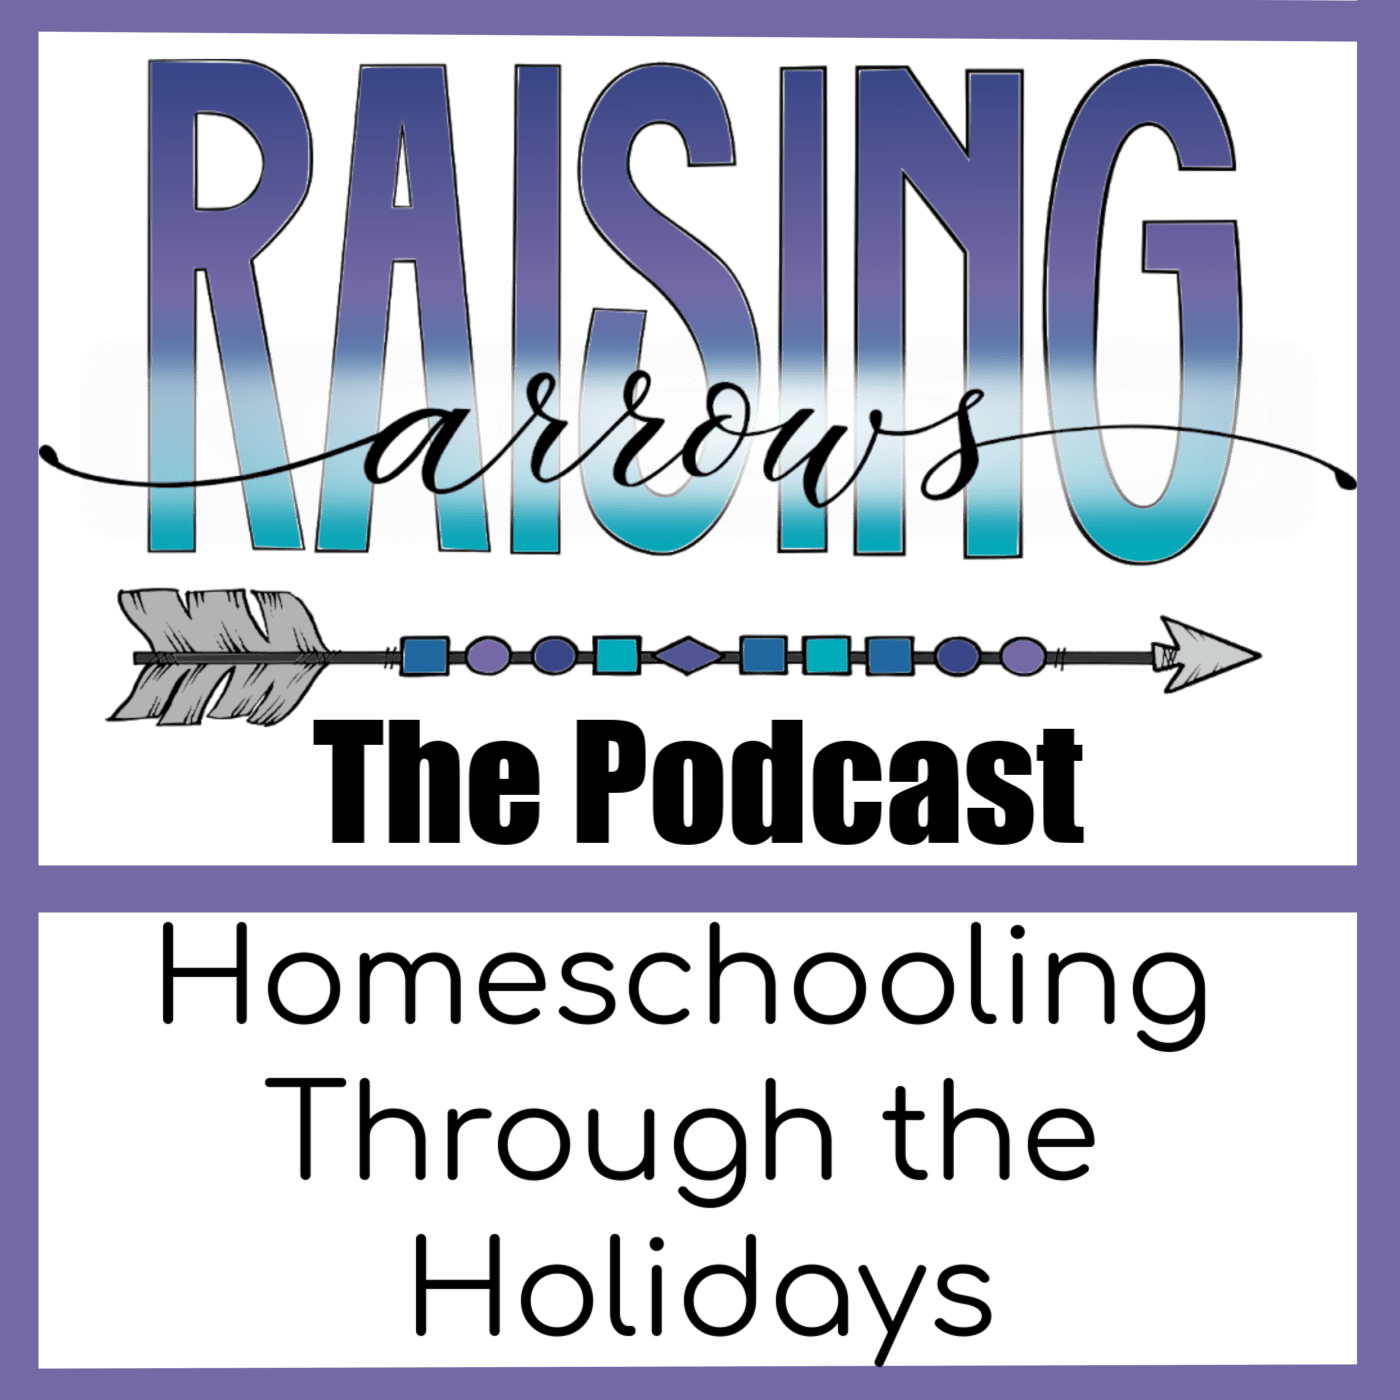 Homeschooling through the holidays can be so much fun!  Learn about great resources for homeschooling during Thanksgiving and Christmas, and how to make memories along the way!